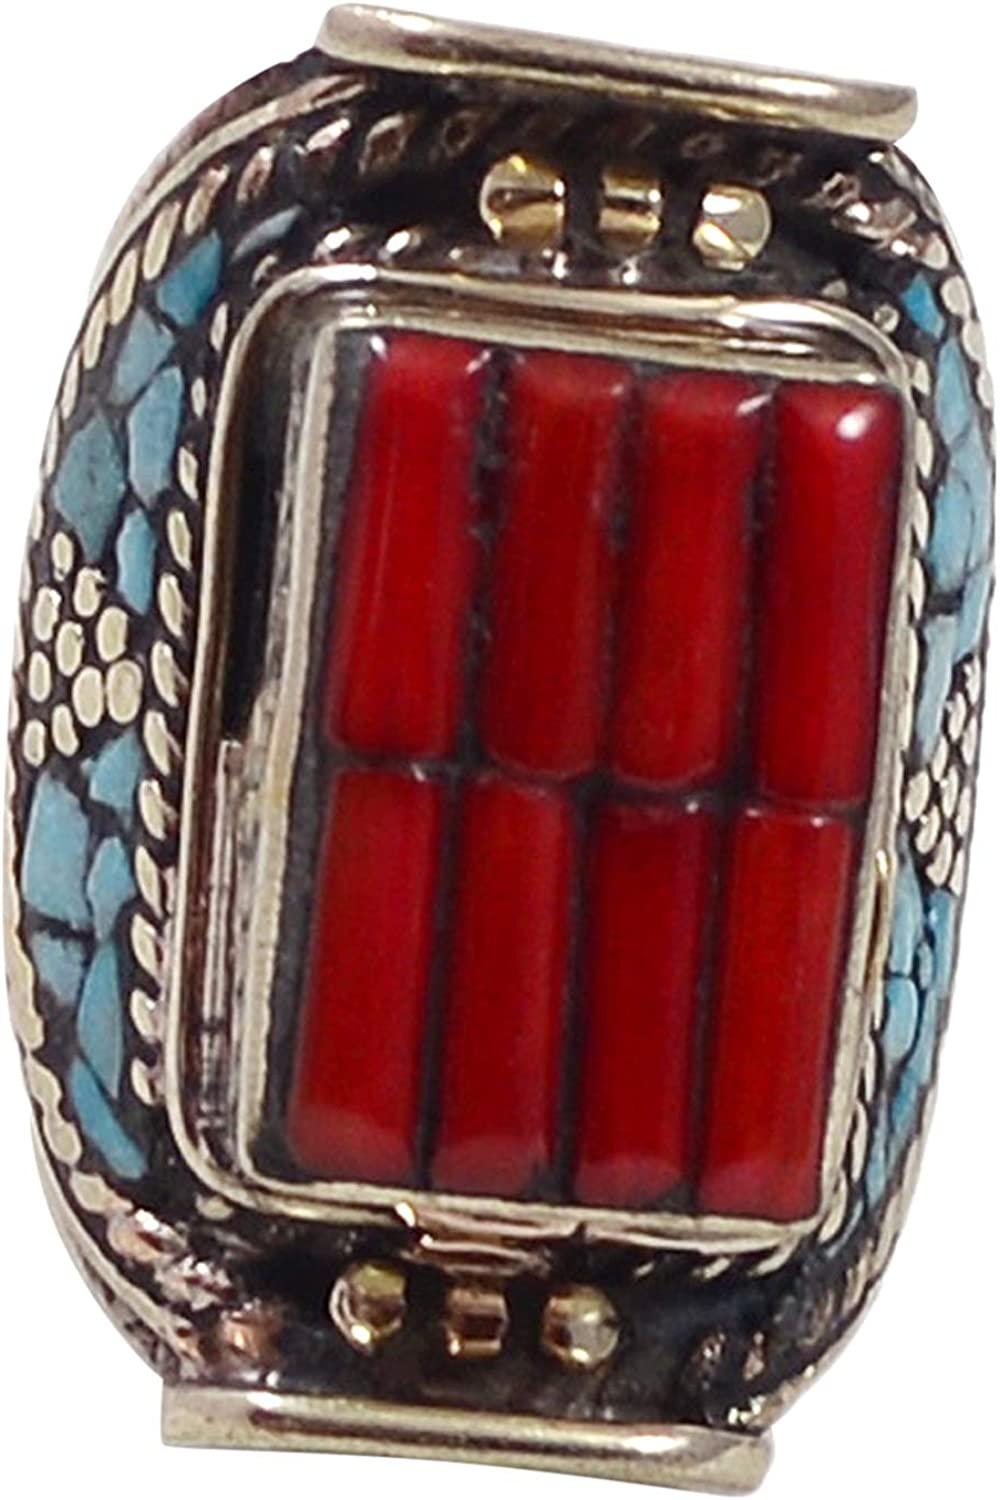 Saamarth Impex Coral /& Turquoise 925 Silver Plated Ring Sz 8 PG-117732